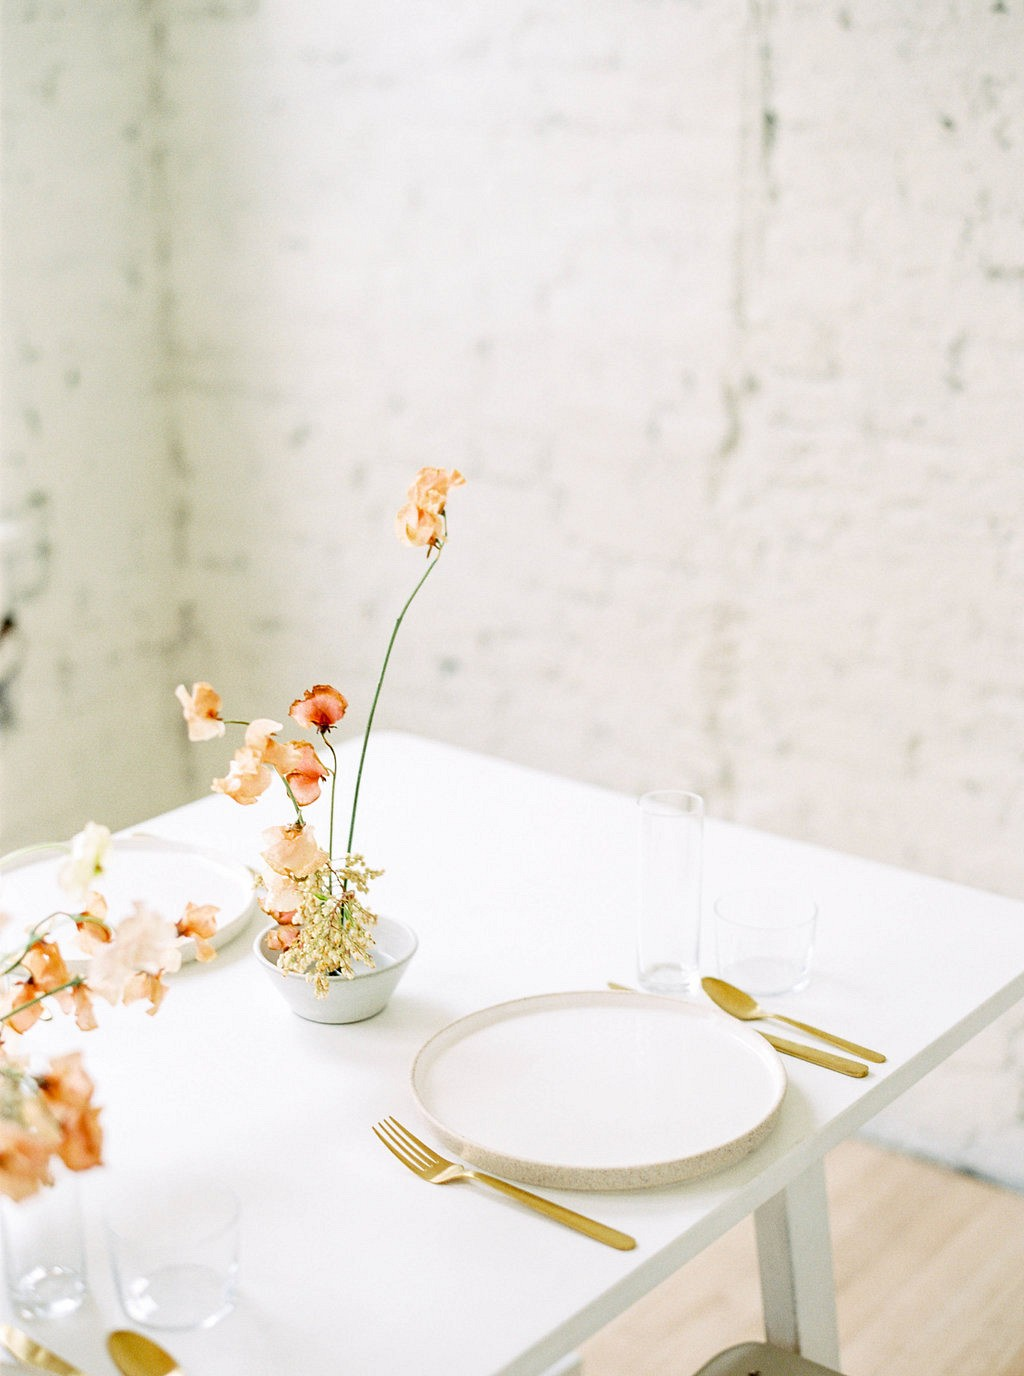 Part 2: Rehearsal Dinner Inspiration With Pops of Coral